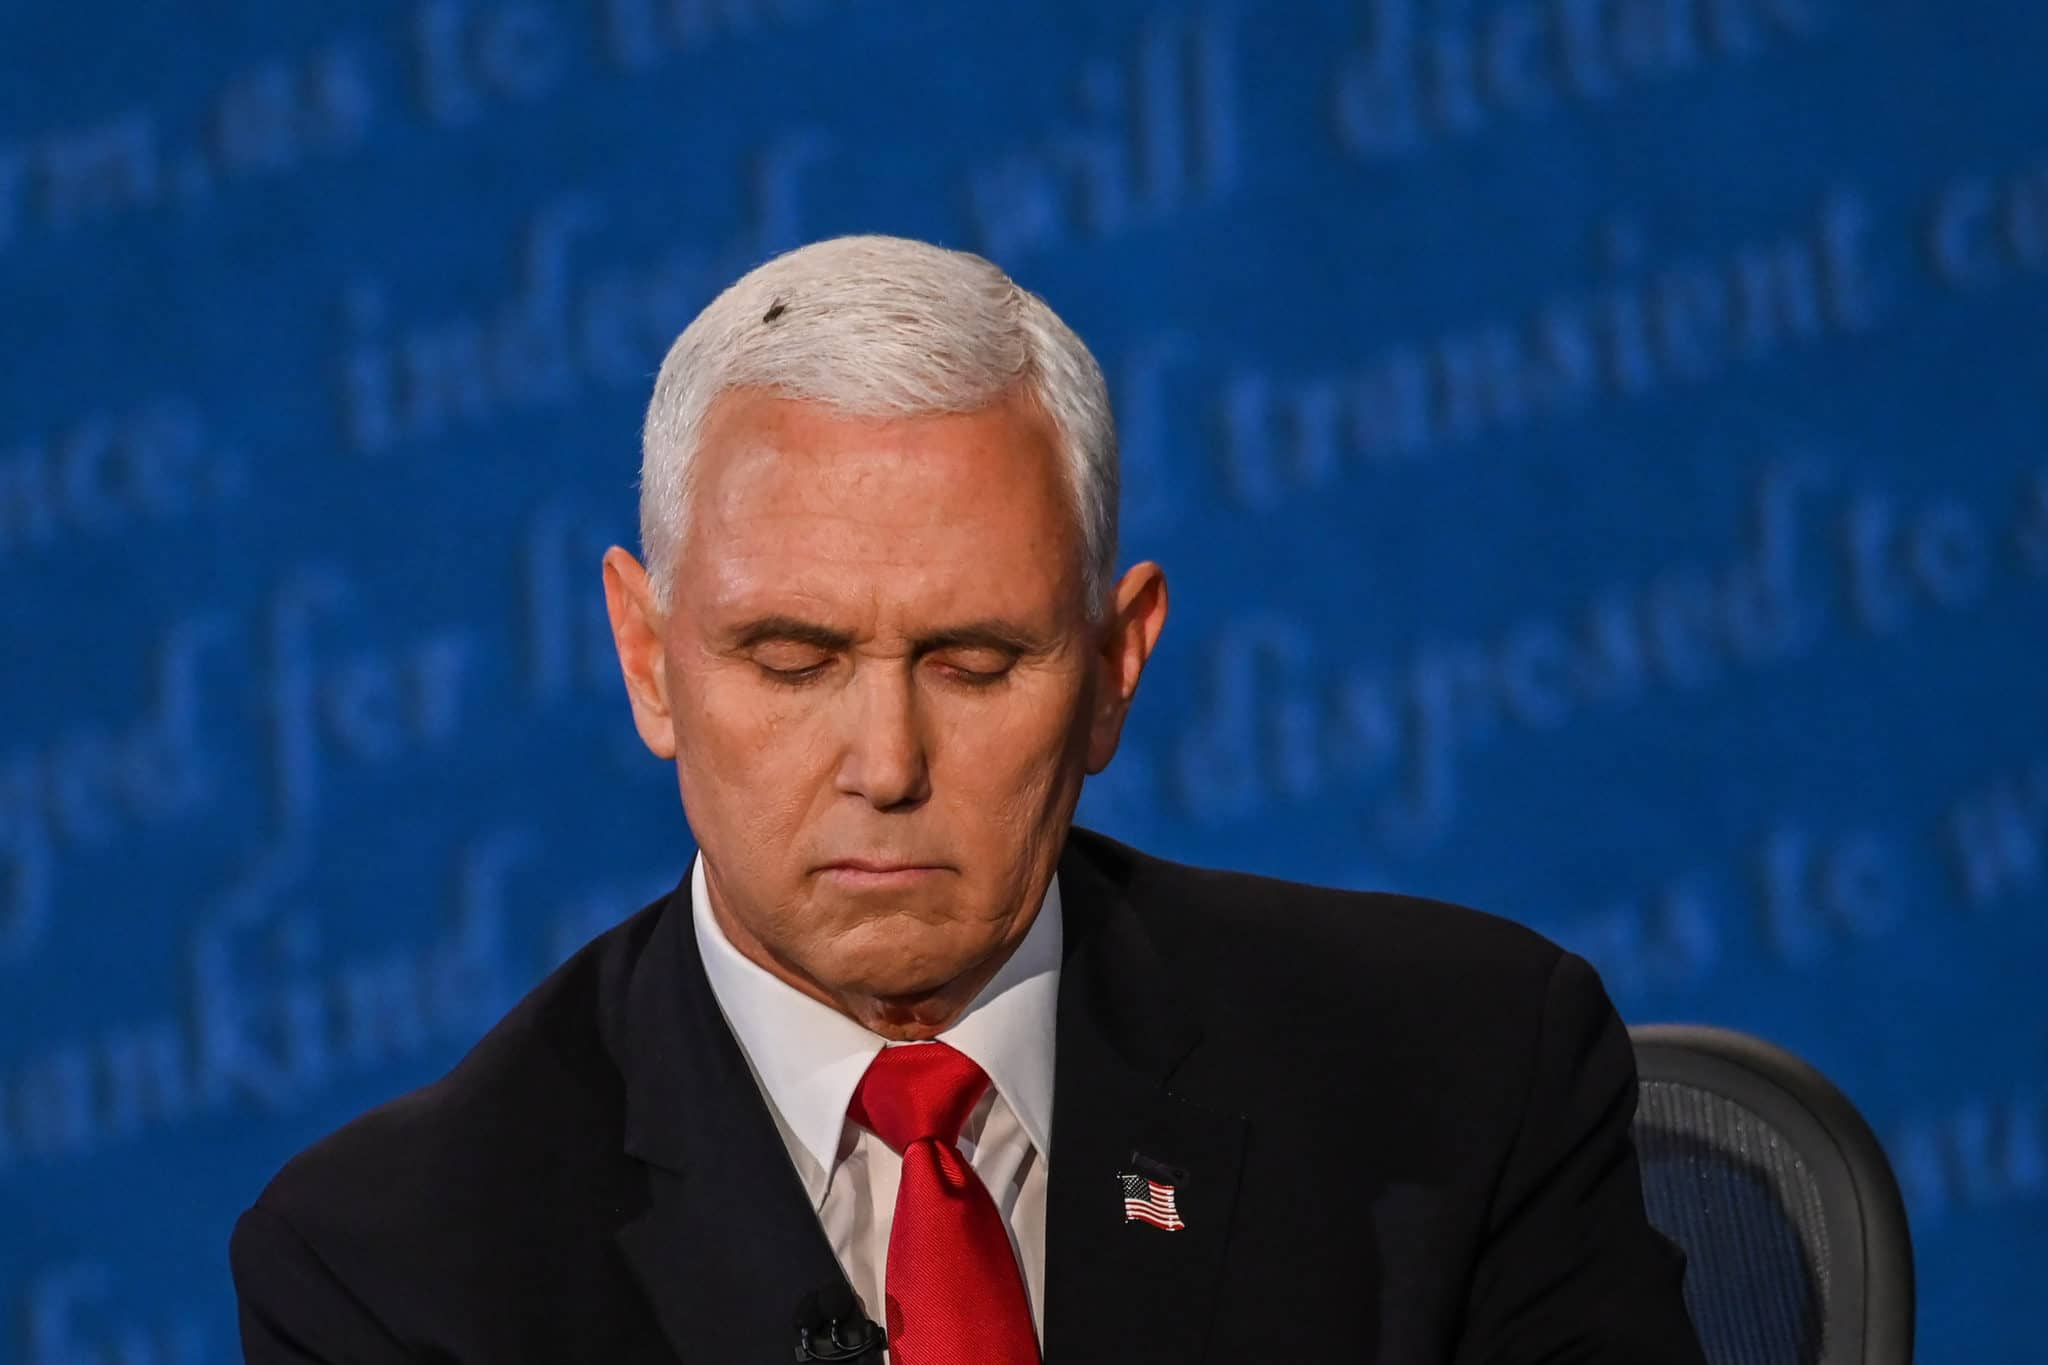 A fly rests on the head of Mike Pence as he takes notes during the vice presidential debate against Kamala Harris